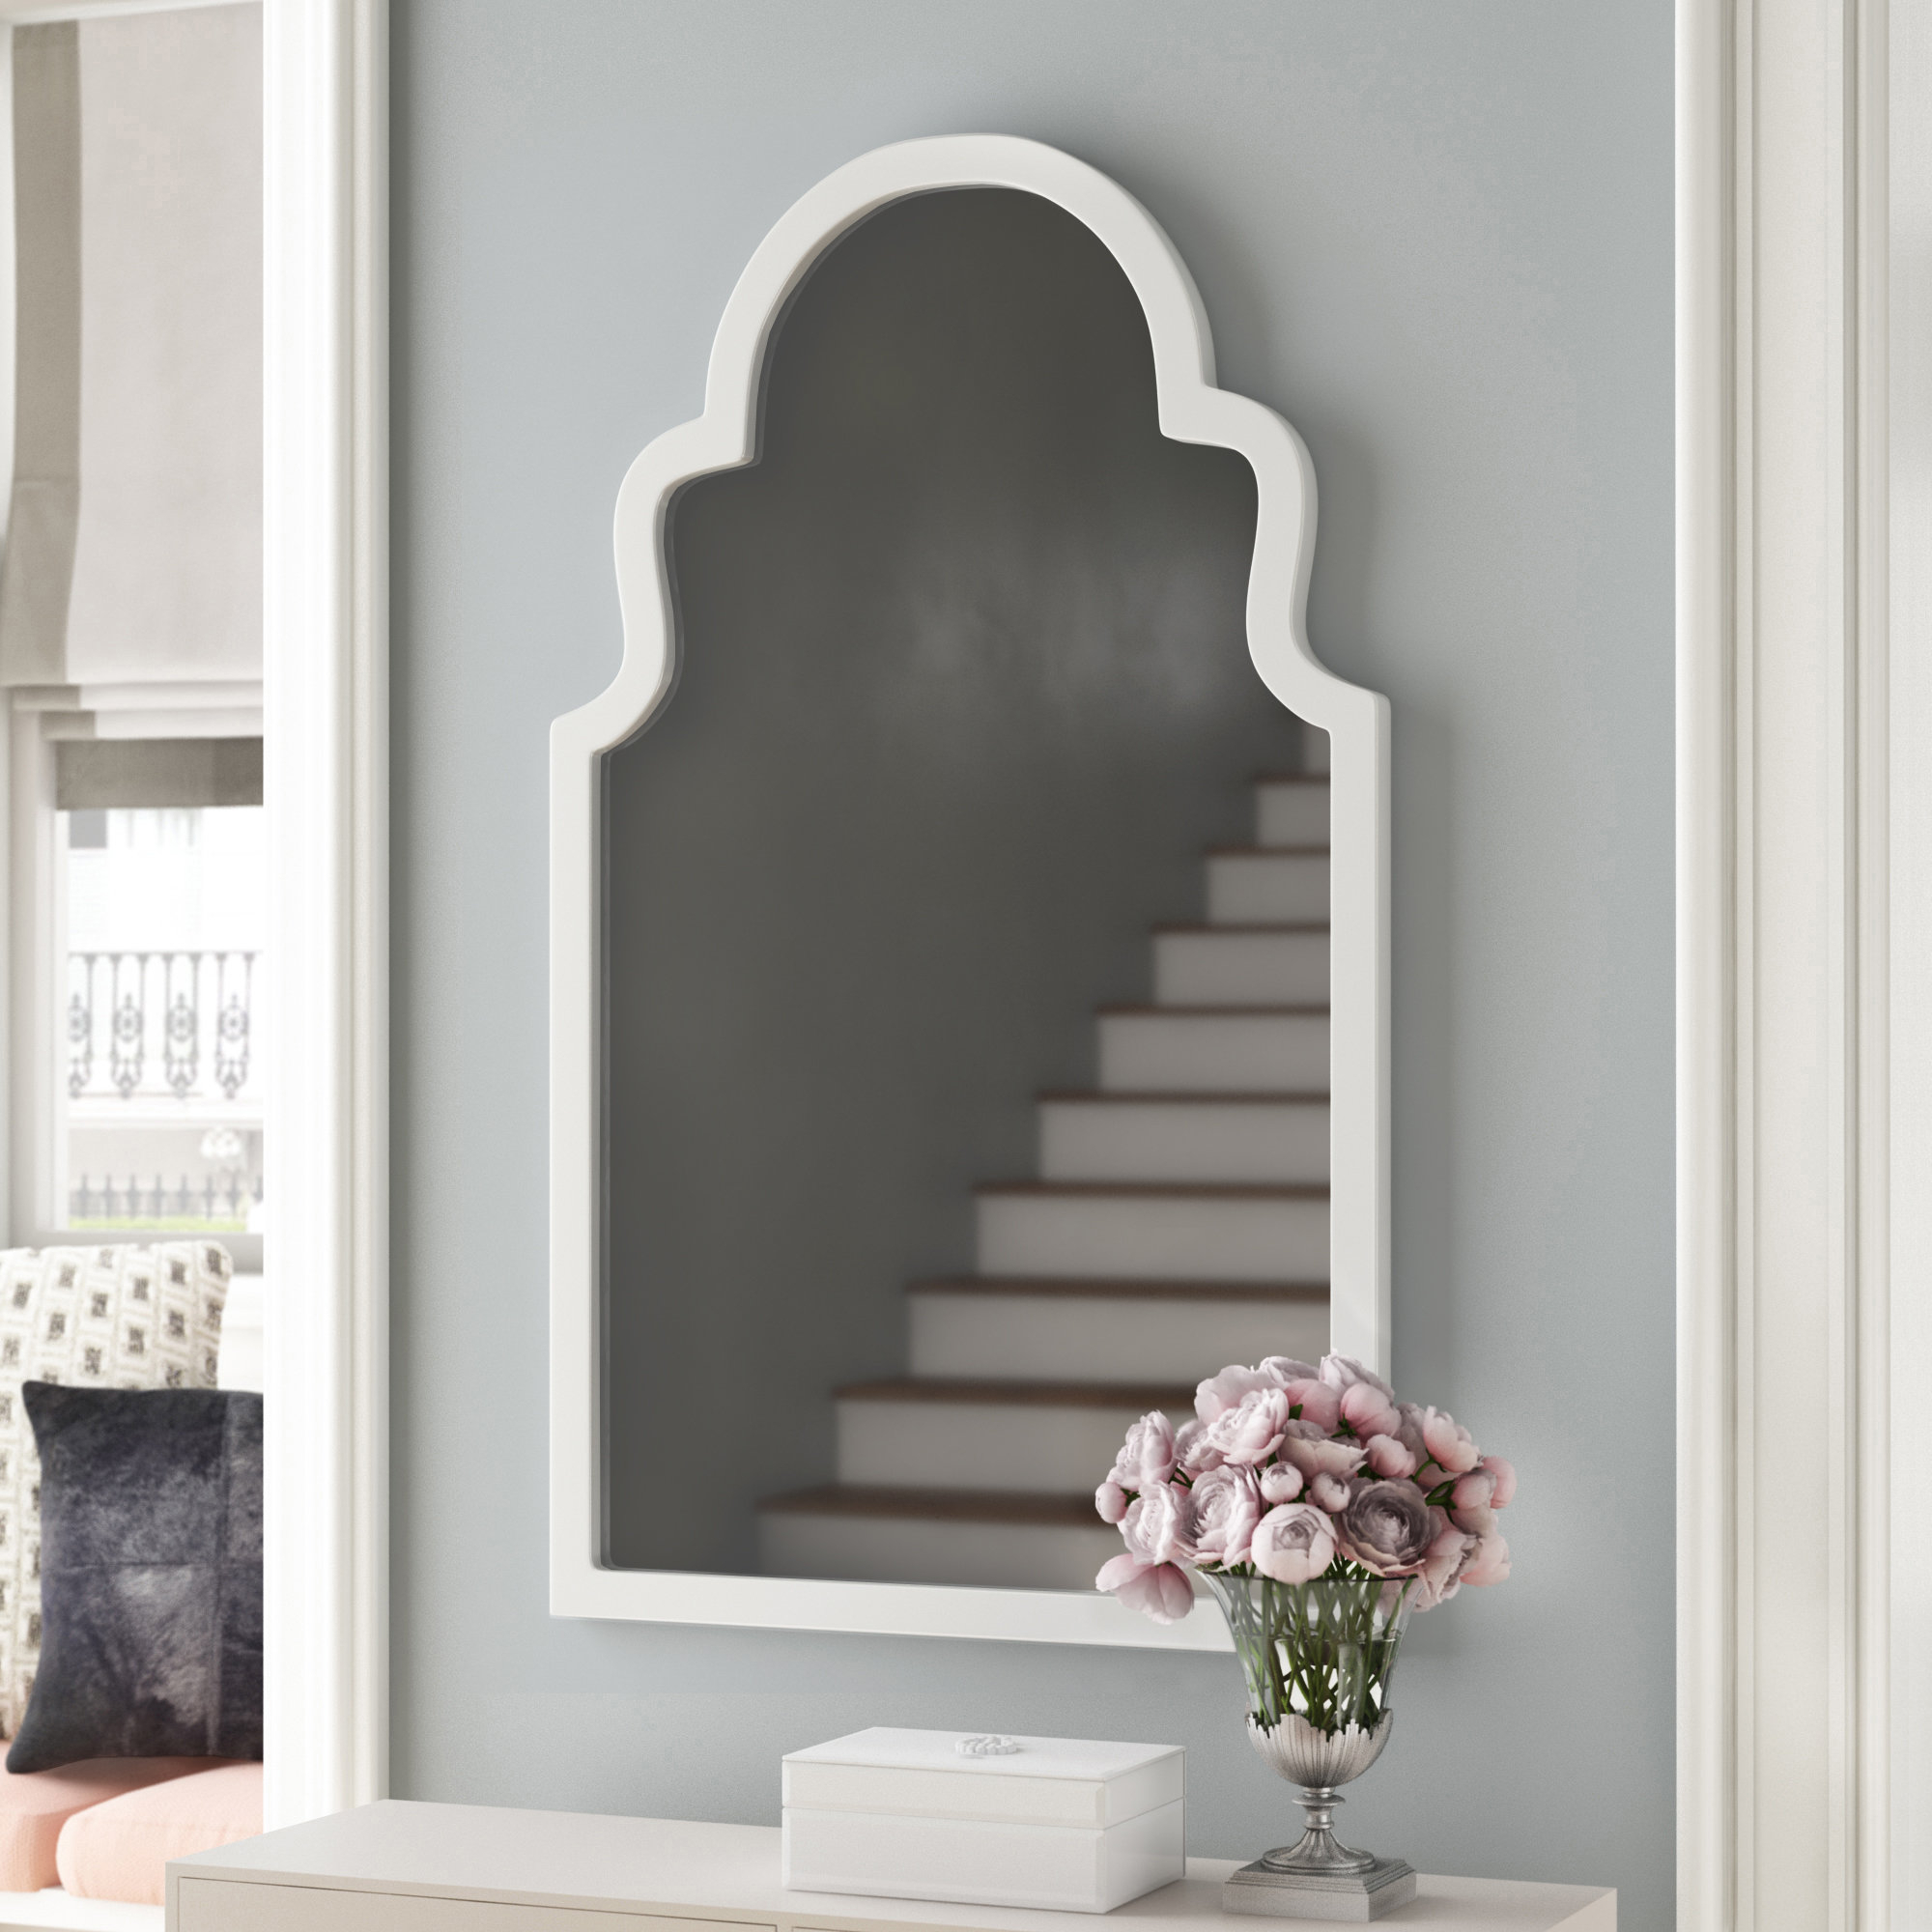 Arch Vertical Wall Mirror Pertaining To Latest Vertical Wall Mirrors (View 4 of 20)